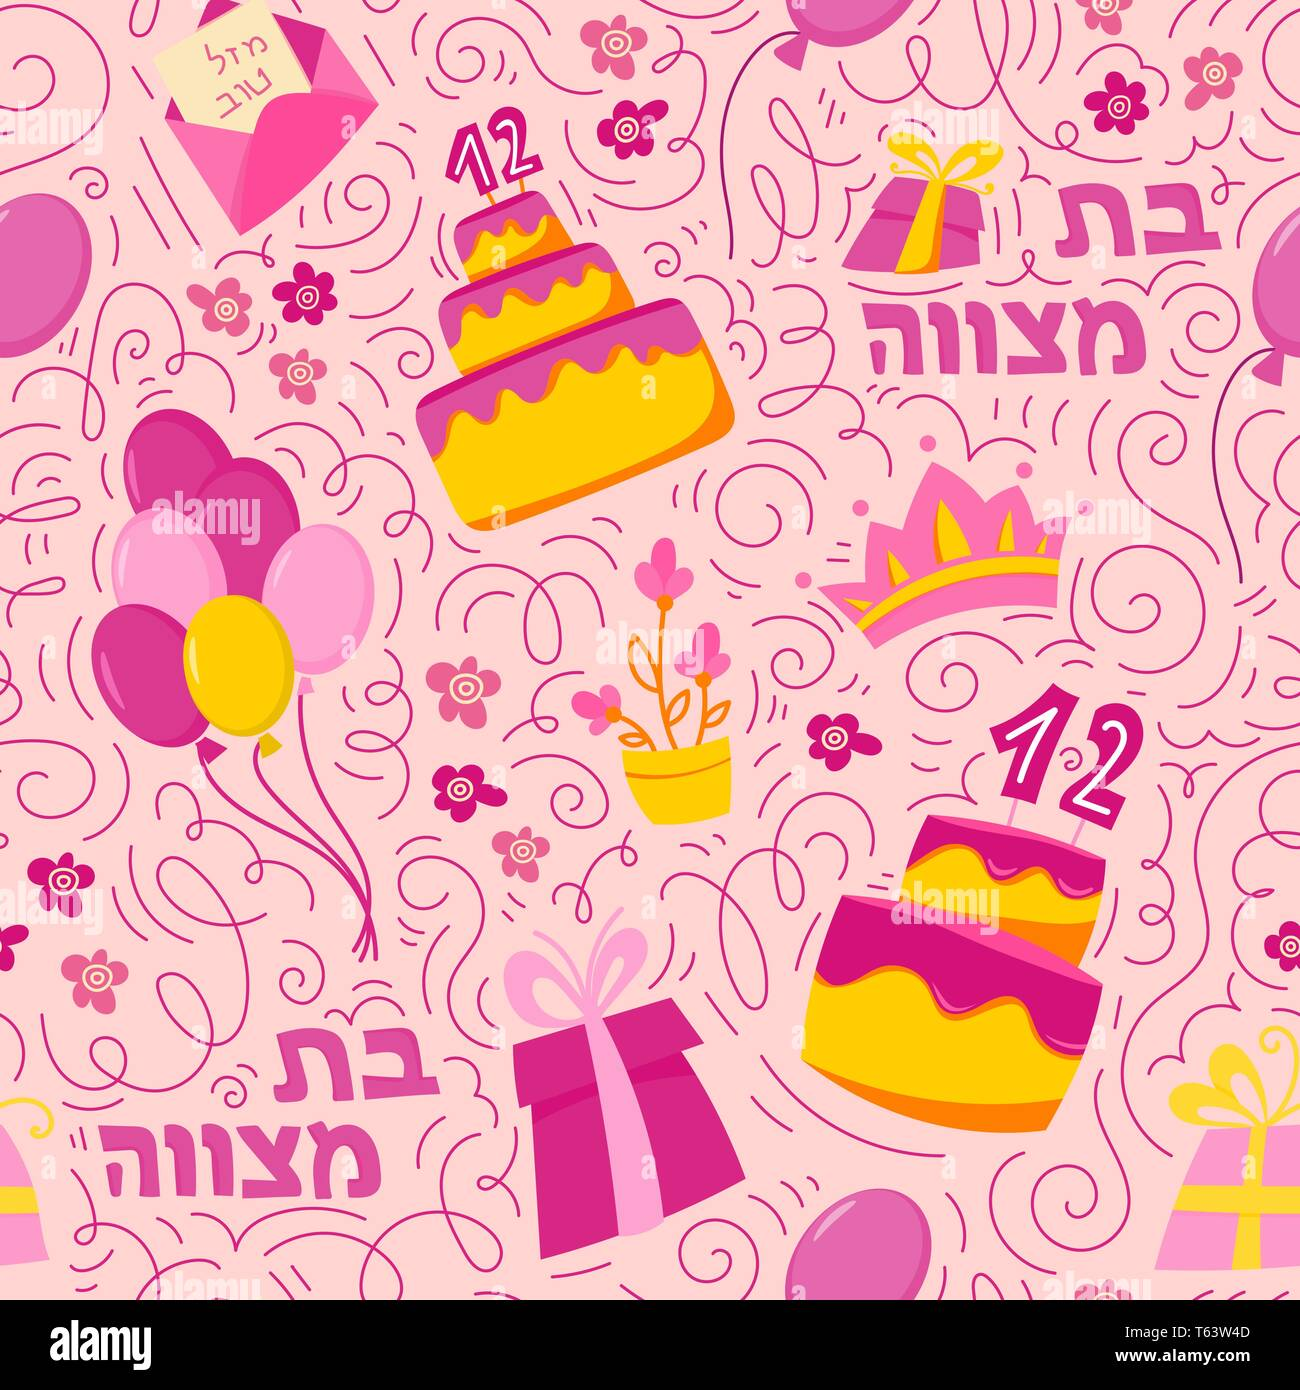 Bat Mitzvah seamless pattern background. Hand drawn vector illustration. Cake with the number 12, balloons, gifts and Hebrew text Bat Mitzhvah. Doodle style. Hebrew text: Bat Mitzhvah - Stock Vector